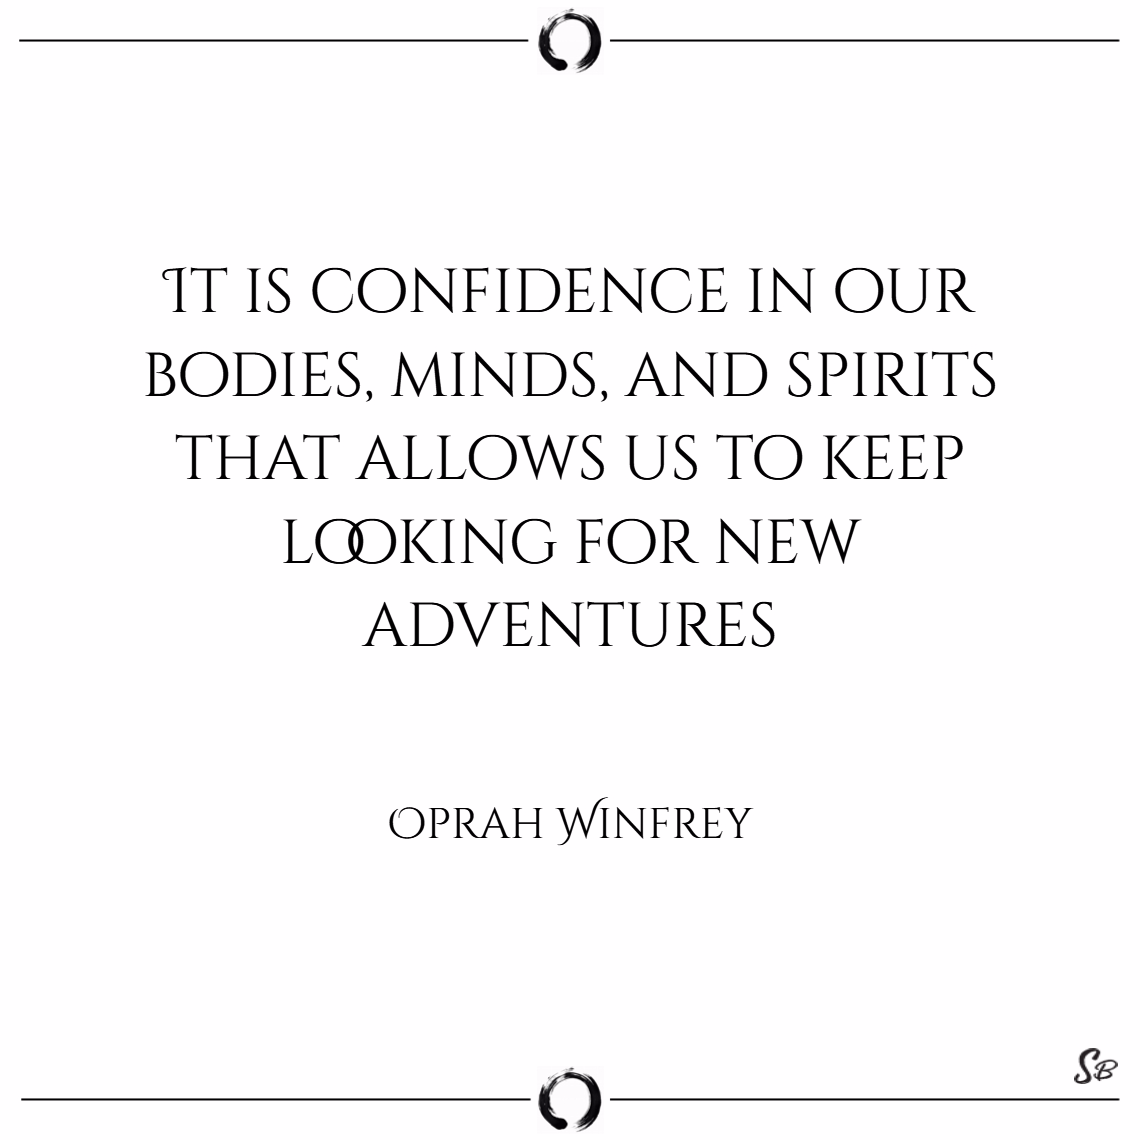 It is confidence in our bodies, minds, and spirits that allows us to keep looking for new adventures. – oprah winfrey